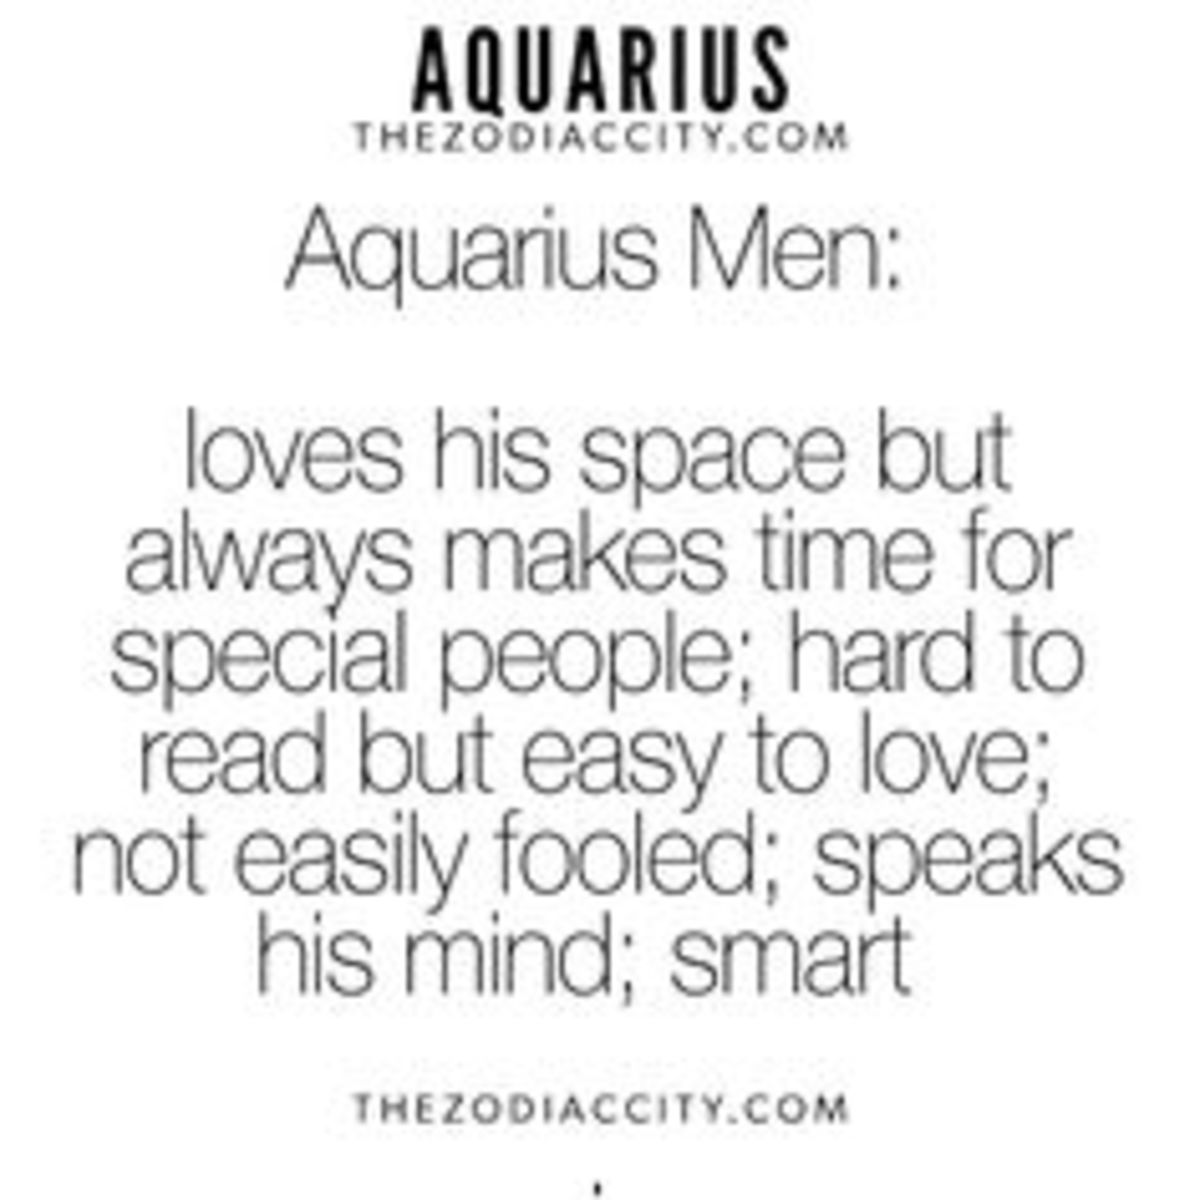 How It Feels to Love and Date the Aquarius Man | PairedLife